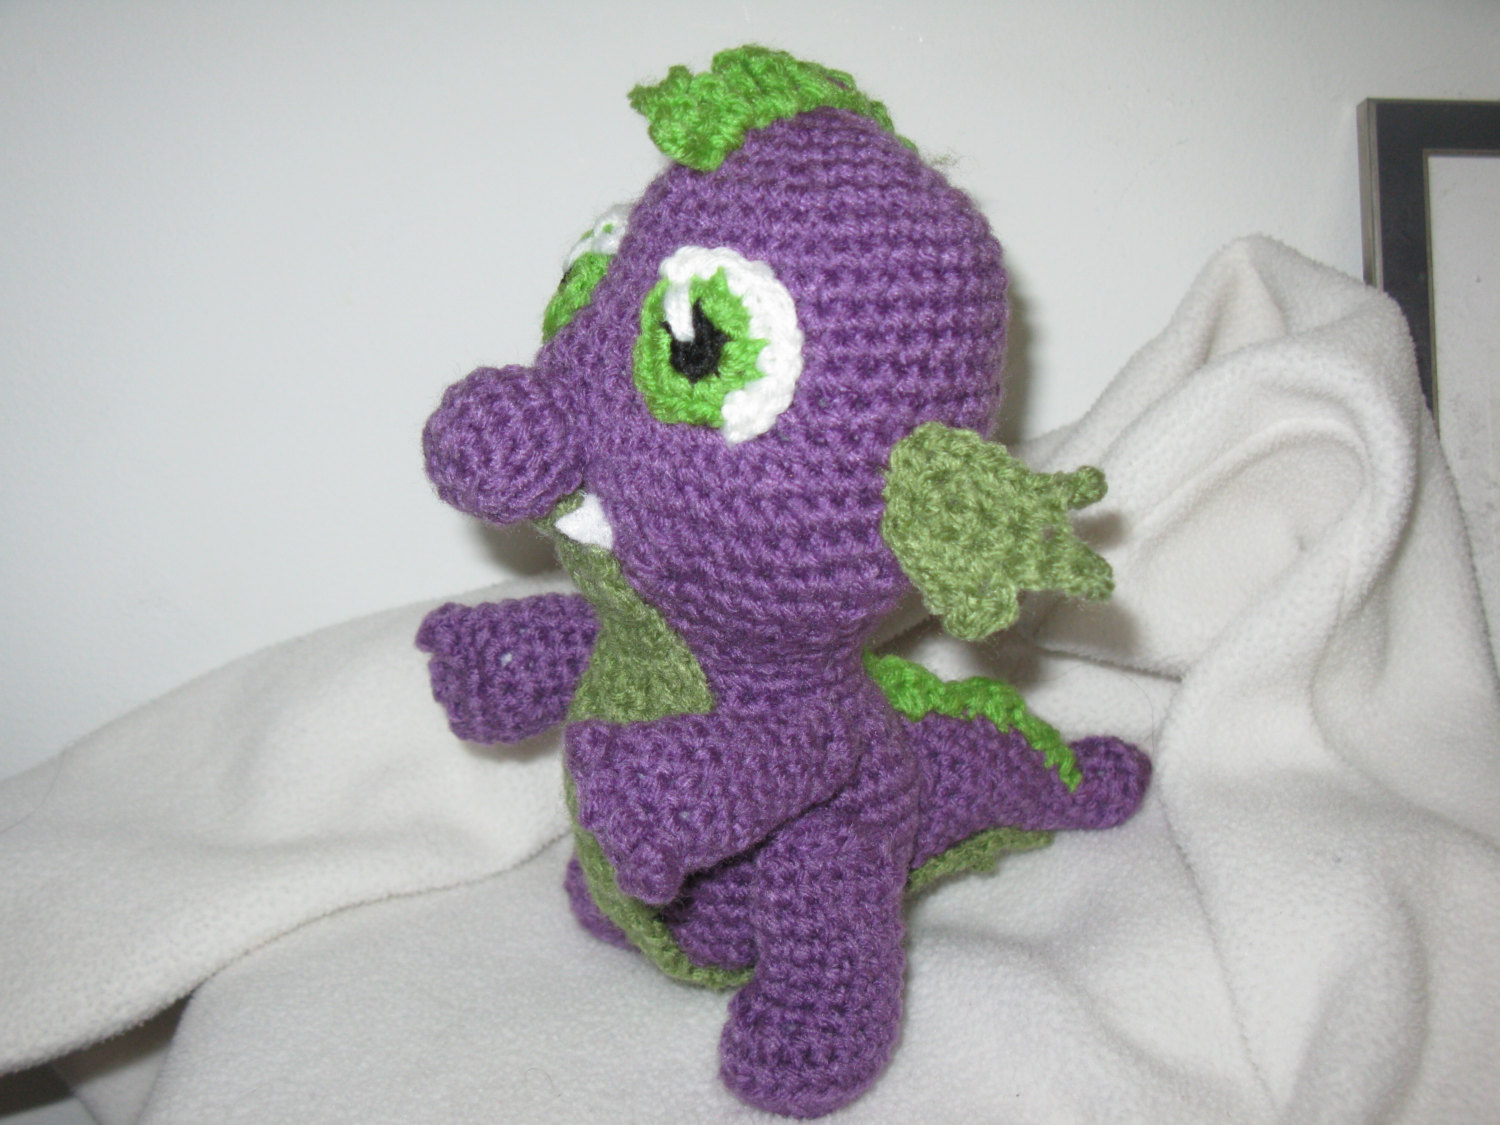 Crochet amigurumi pattern generator kalulu for amigurumi spike the dragon bankloansurffo Choice Image